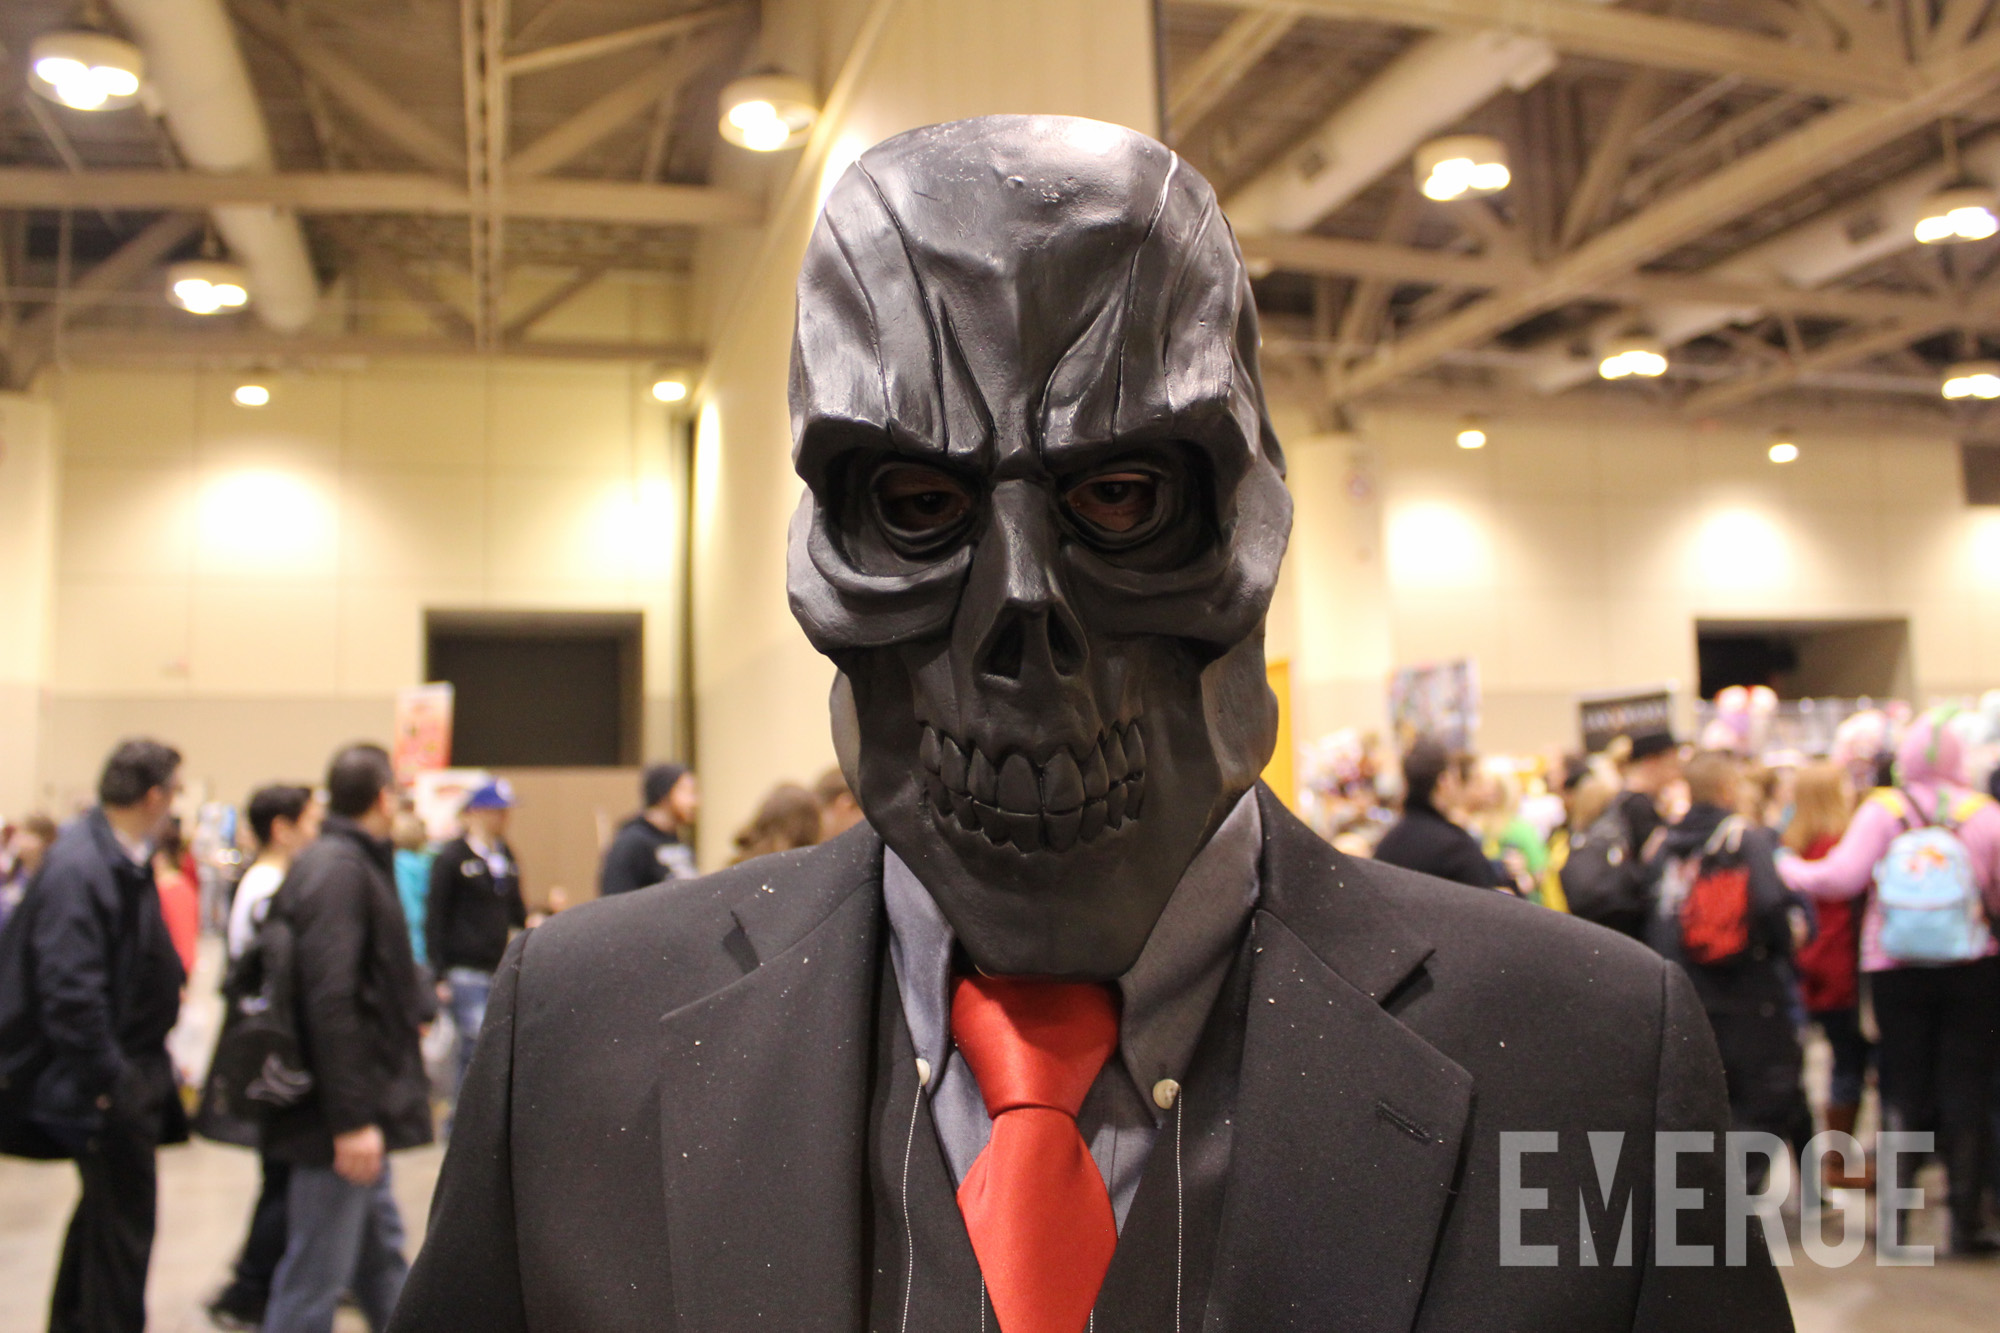 Black Mask. King of the criminal underworld. Despises Batman with a passion and surprisingly, very photogenic